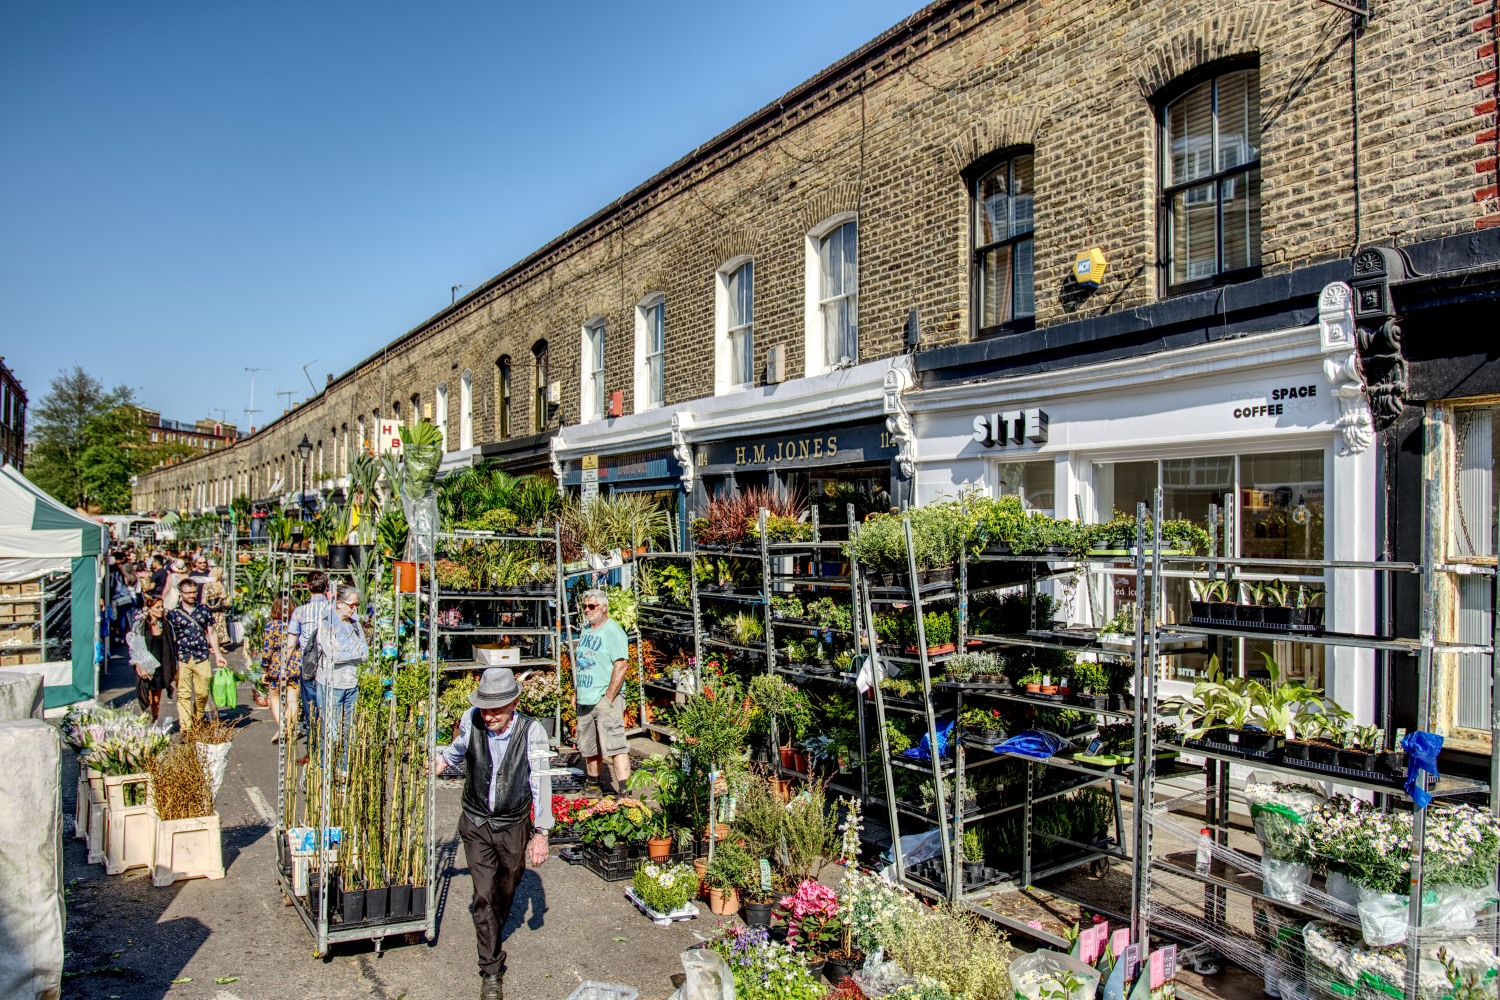 Columbia Road Flower Market traders pack their stands